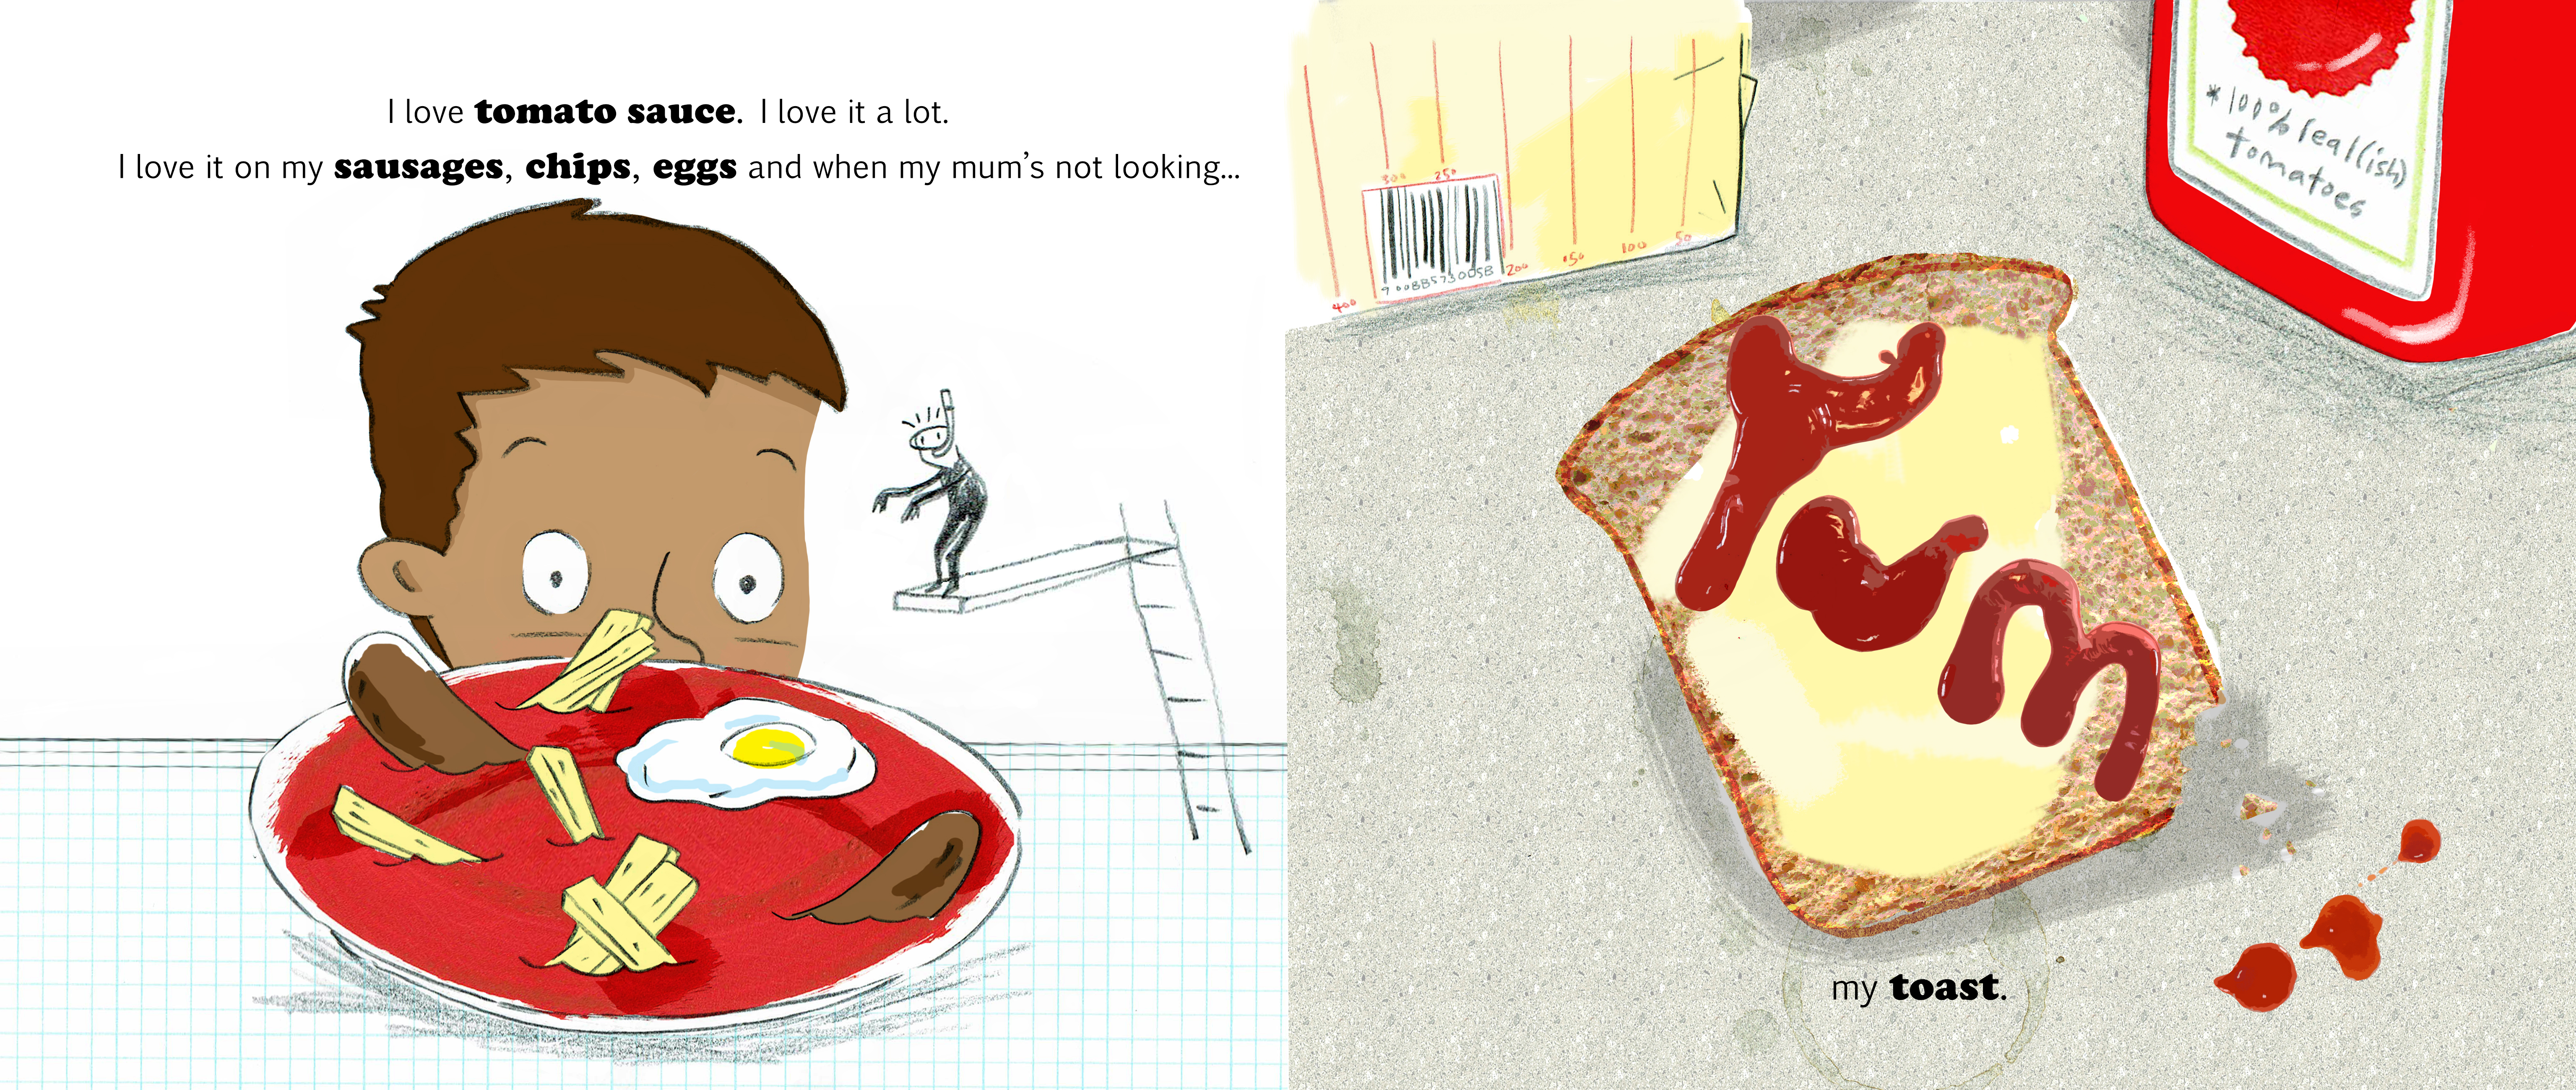 Two page spread from I Love Tomato Sauce with the boy hiding behind a plate full of chips, sausages, eggs and tomato sauce next to a piece of toast with the word Yum written on it in tomato sauce